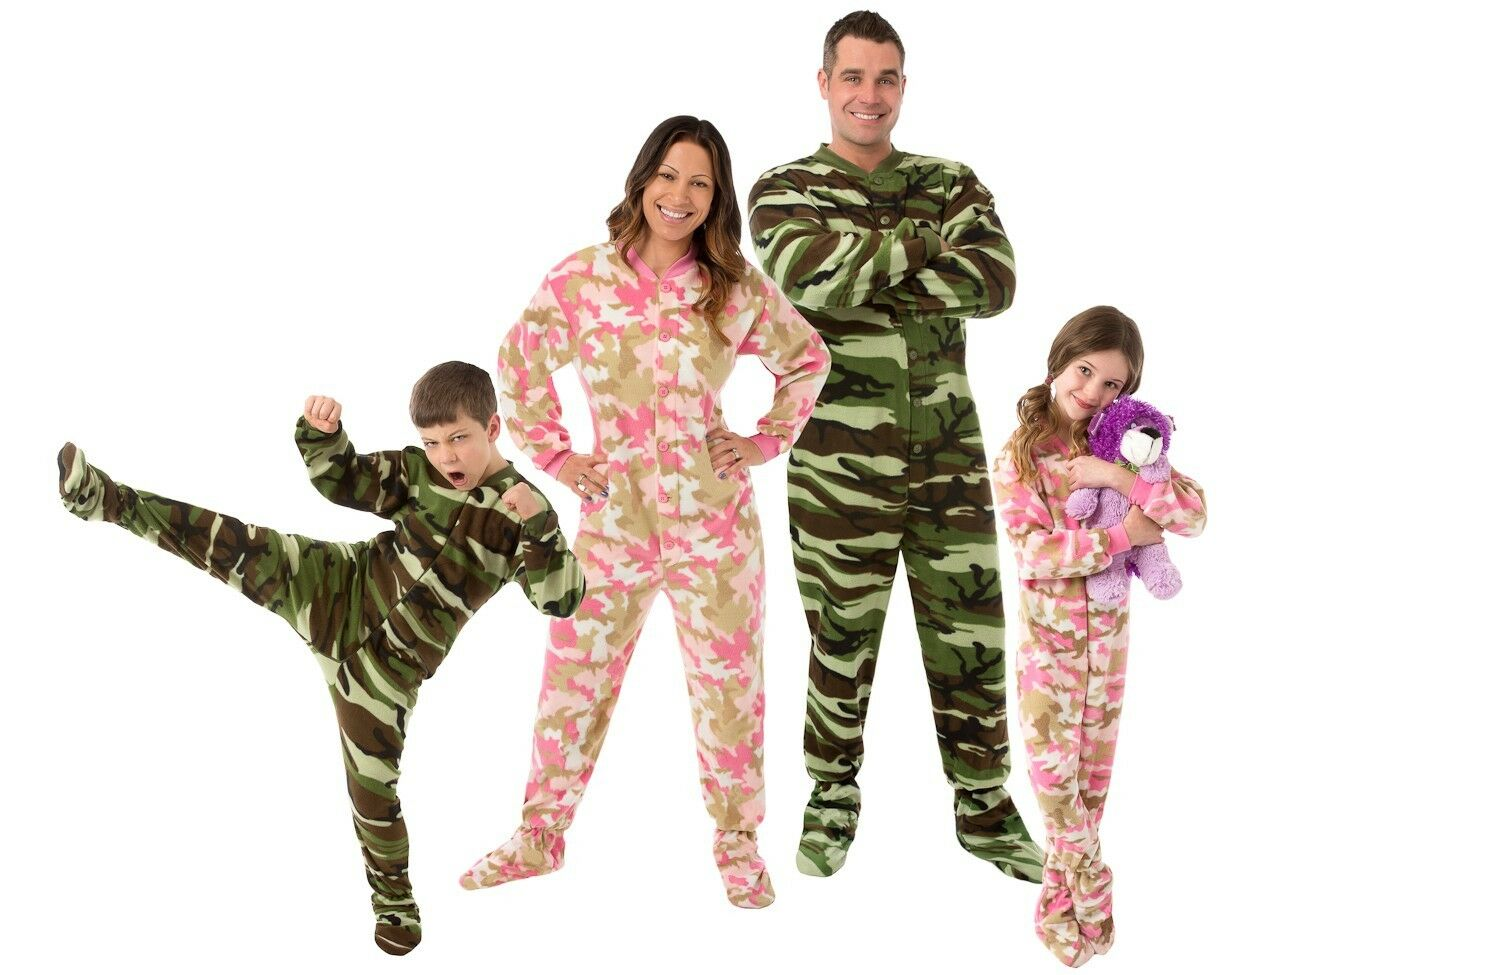 Big Feet Pjs - Grün Camo Fleece Footed Pajamas - Adult, Kids & Infant